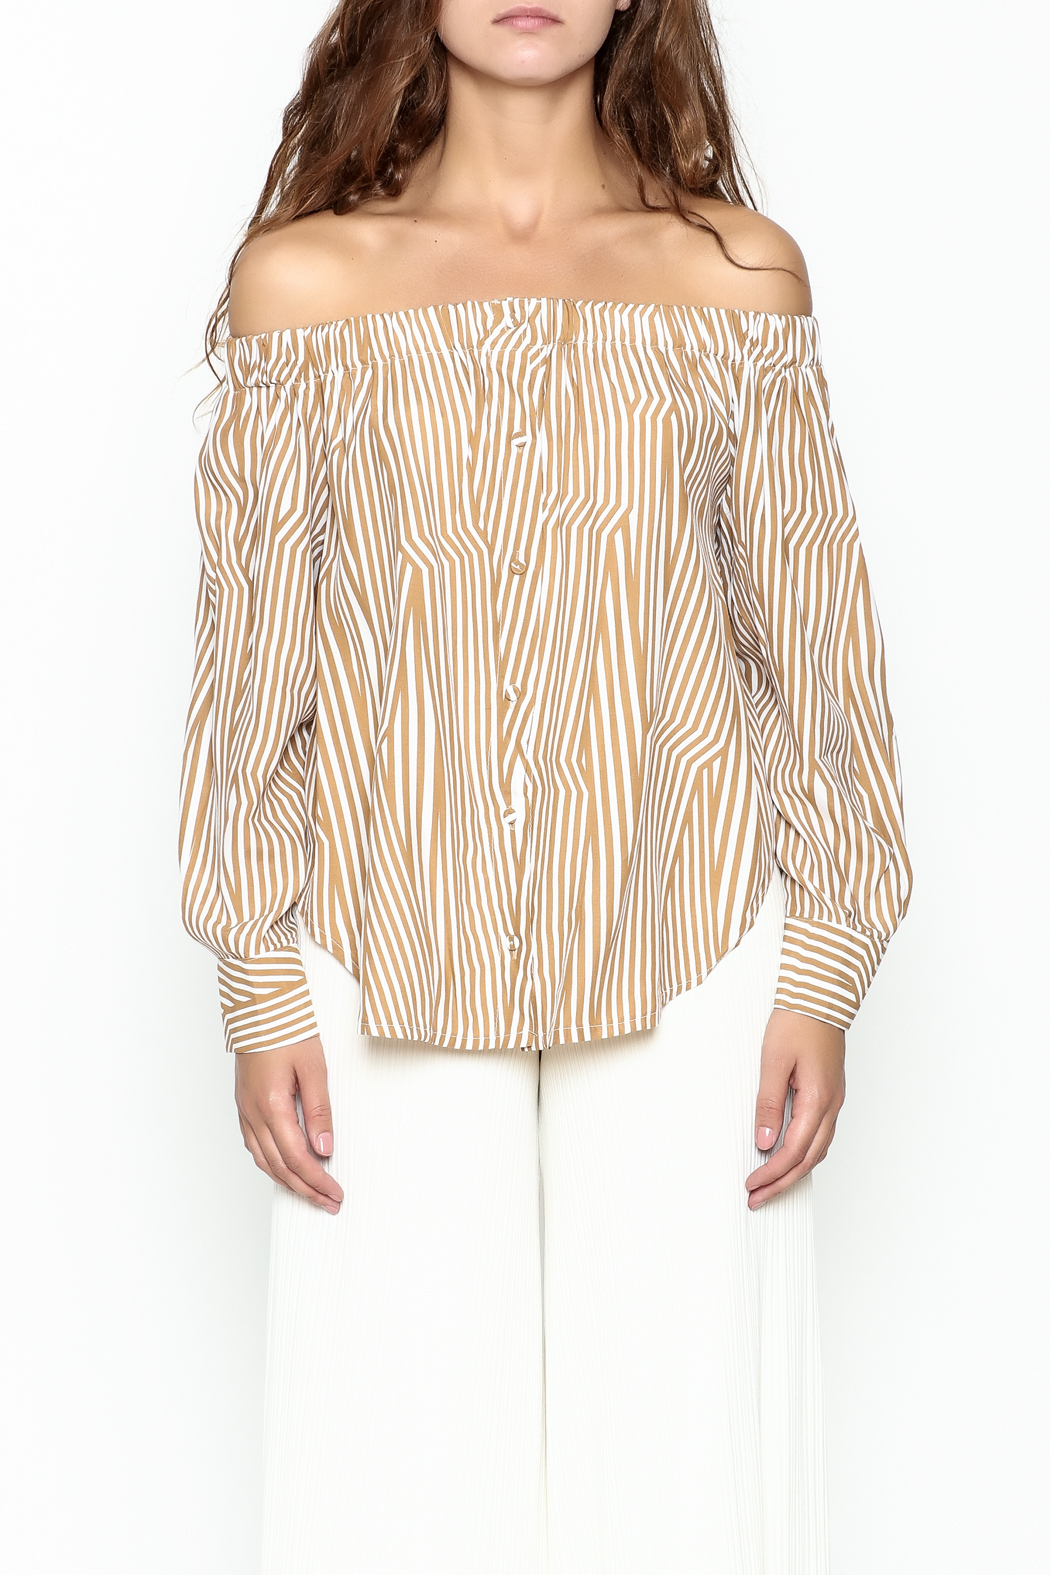 Pinkyotto Off Shoulder Top - Front Full Image